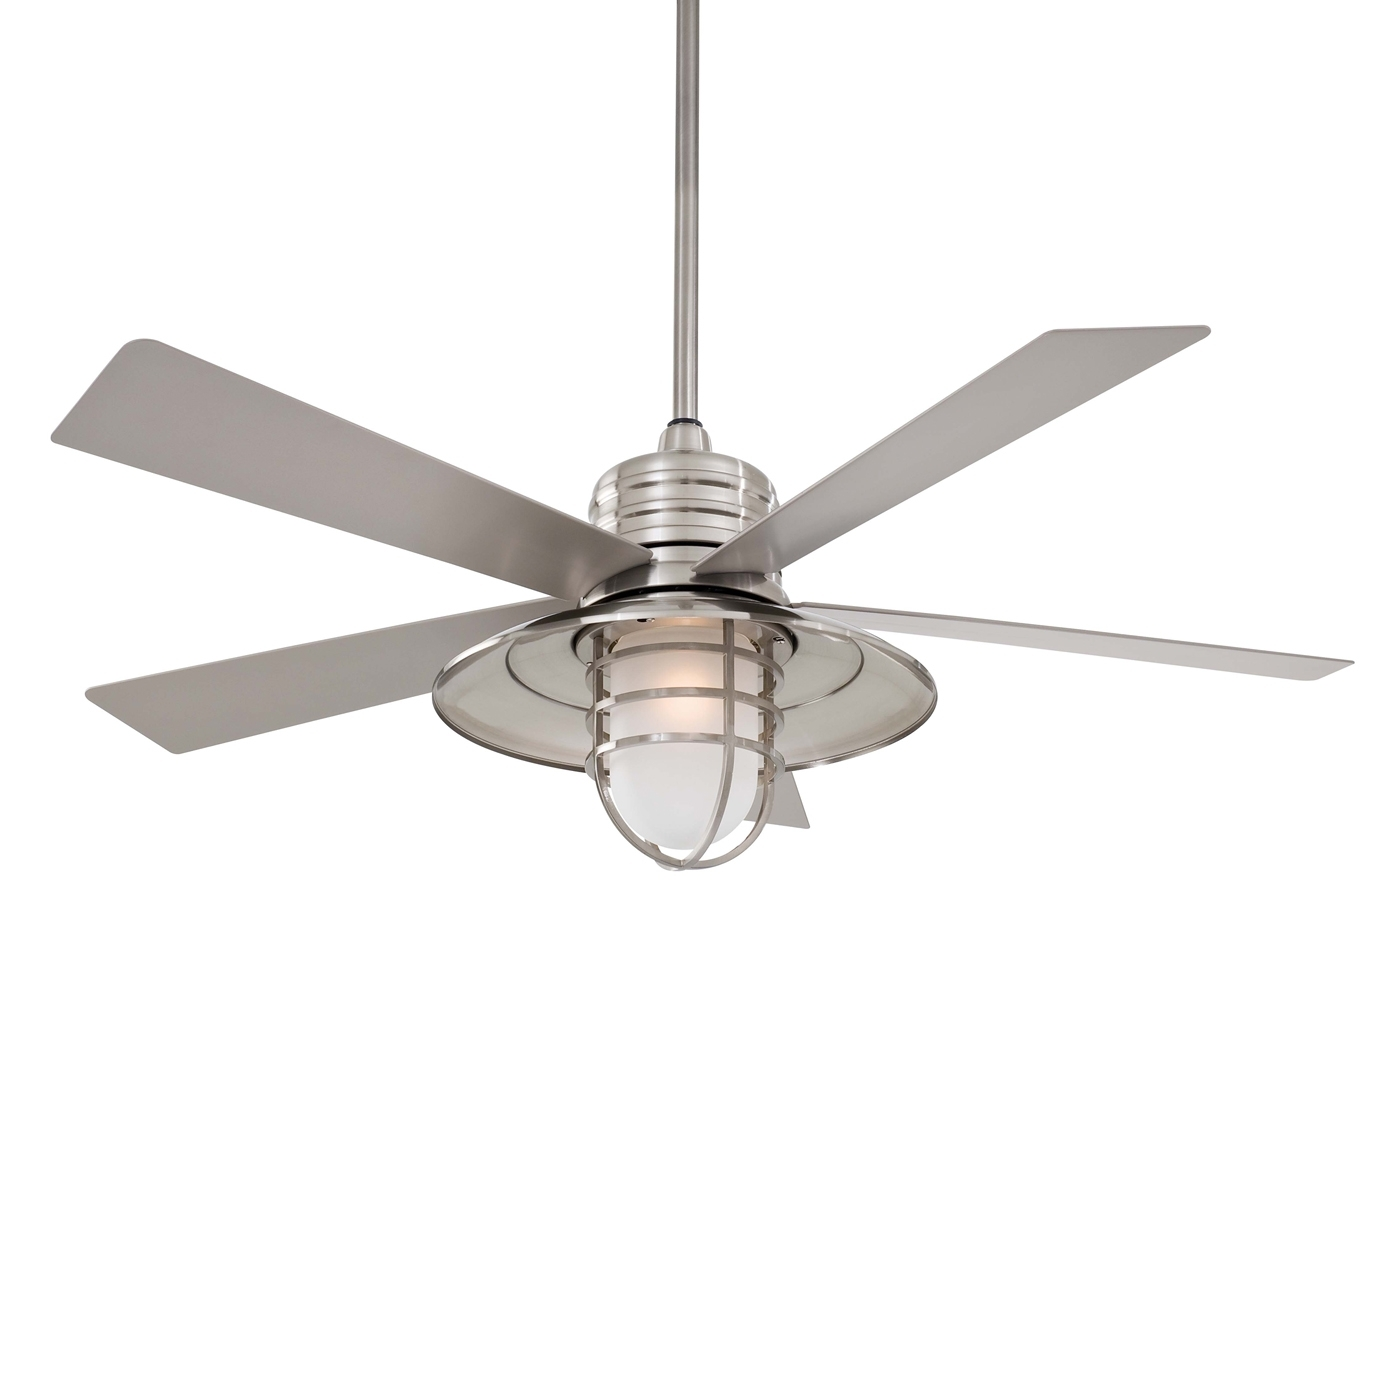 Ceiling Fan: Best Outdoor Ceiling Fans Design Ceiling Fan With Light Throughout 2018 Rustic Outdoor Ceiling Fans With Lights (View 4 of 20)